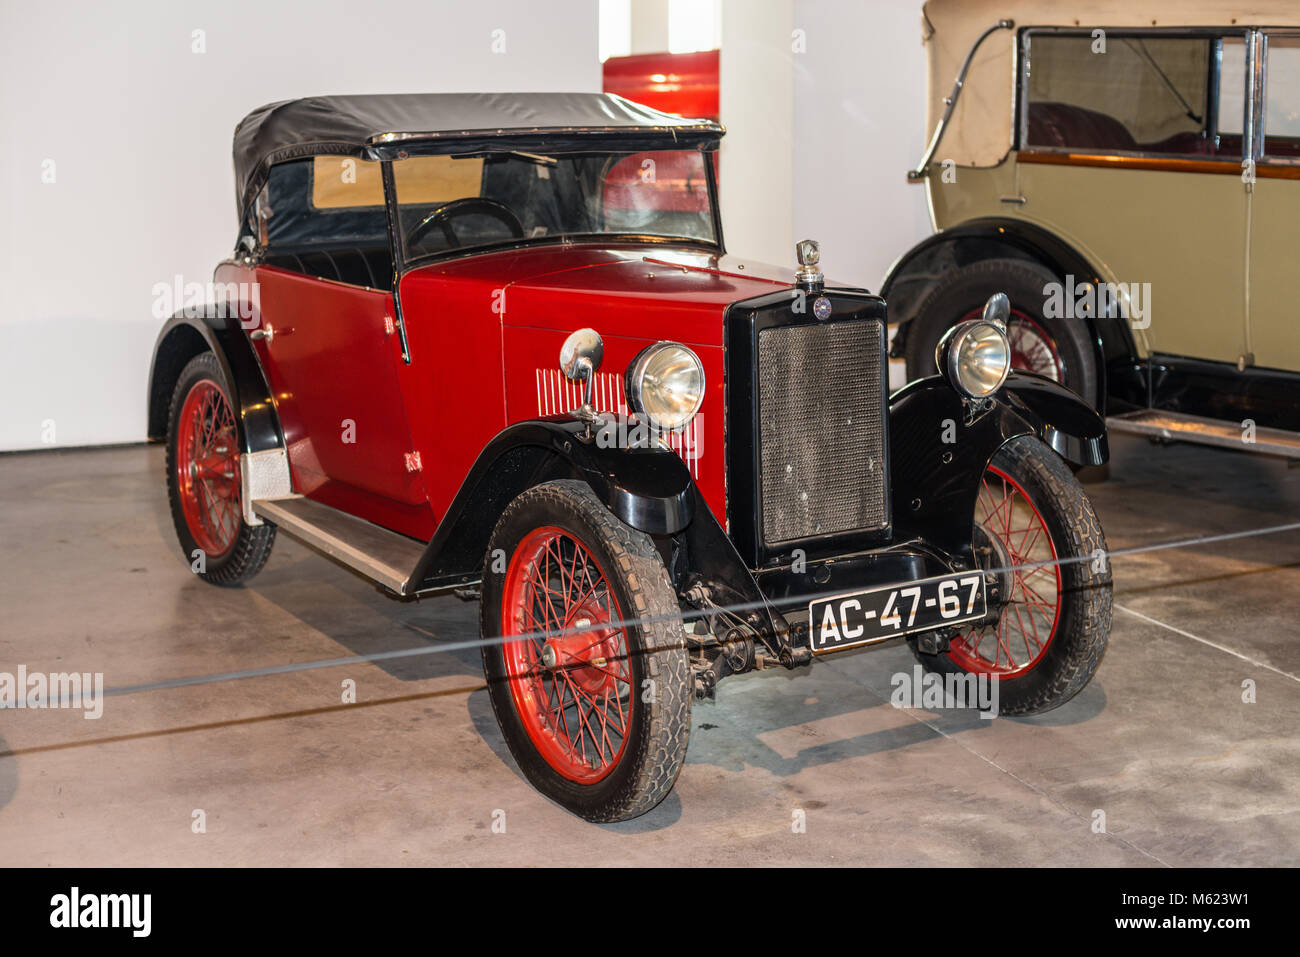 Malaga, Spain - December 7, 2016: The doctor's car Morris Motor (model 1931) UK displayed at Malaga Car Museum - Stock Image